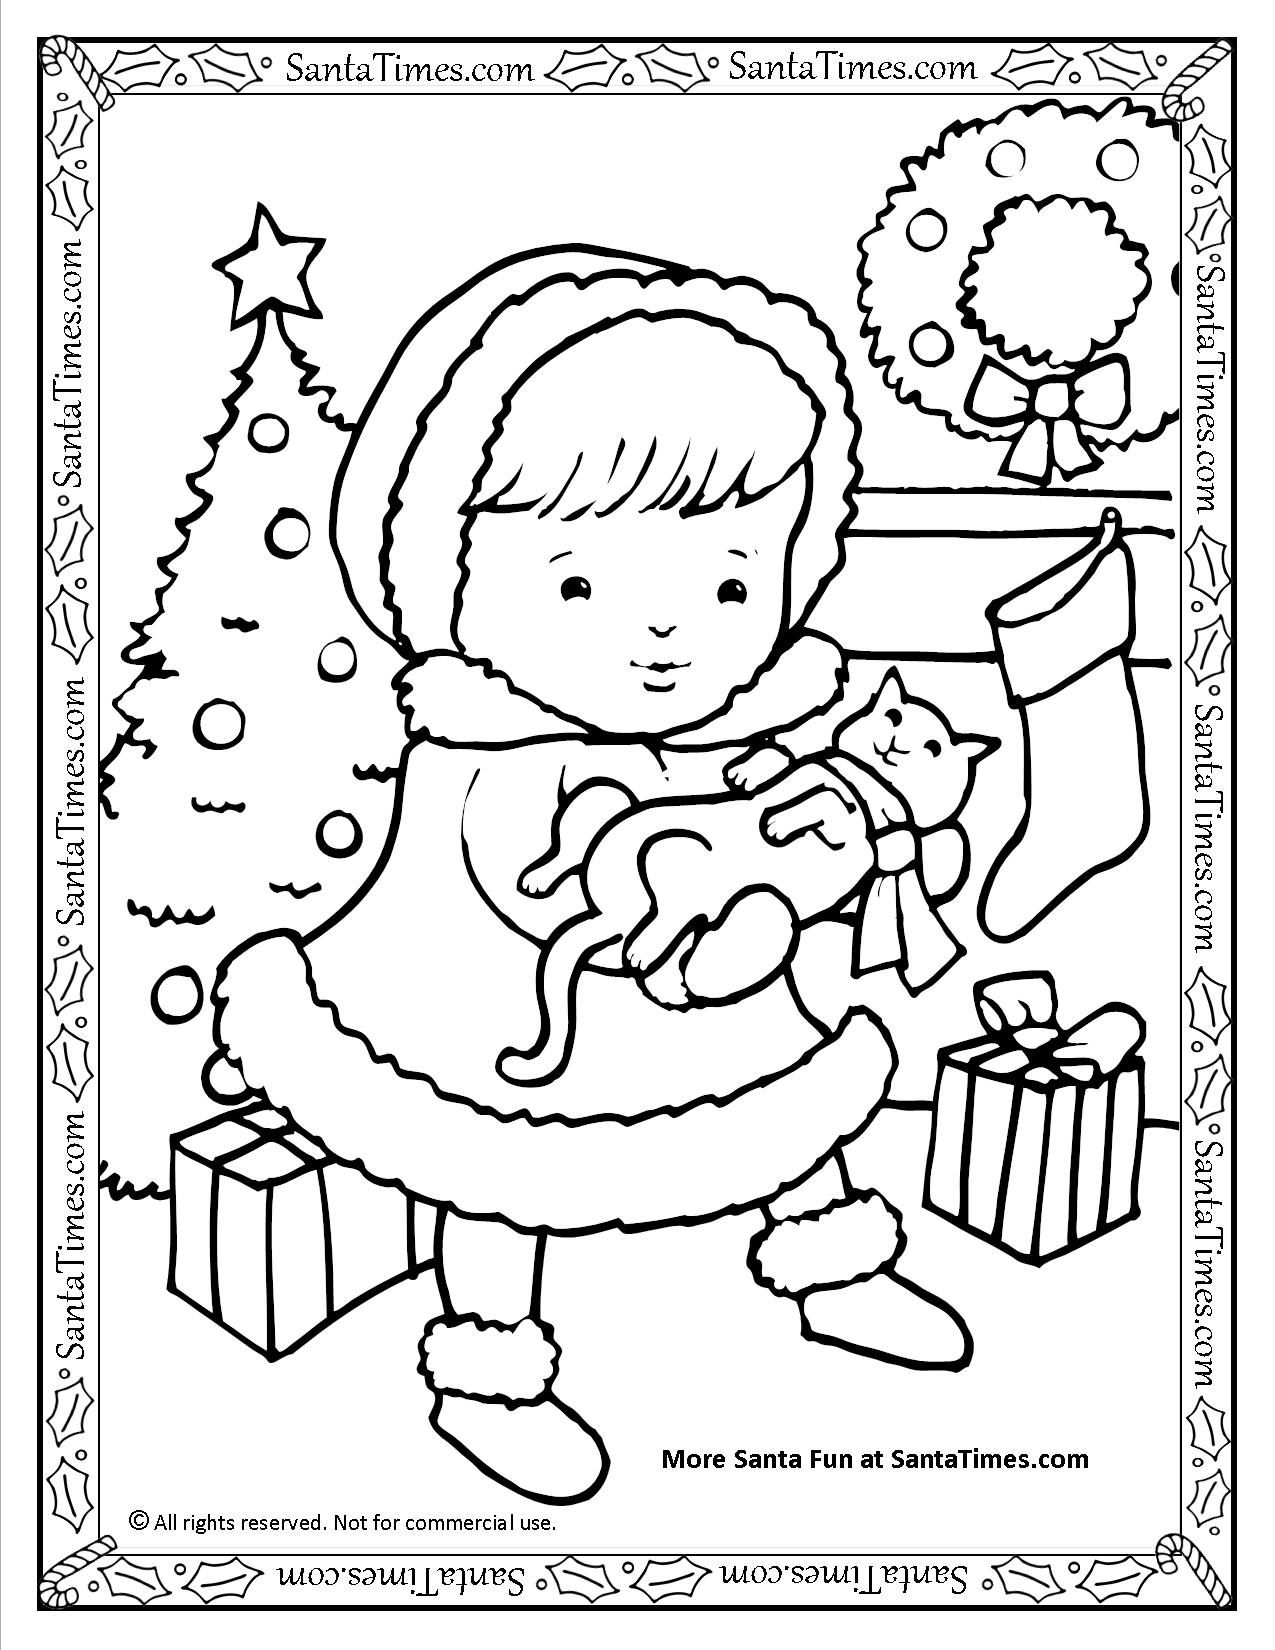 Coloring pictures merry christmas - Merry Christmas Kitty Printable Coloring Page More Fun Activities And Coloring Pages At Santatimes